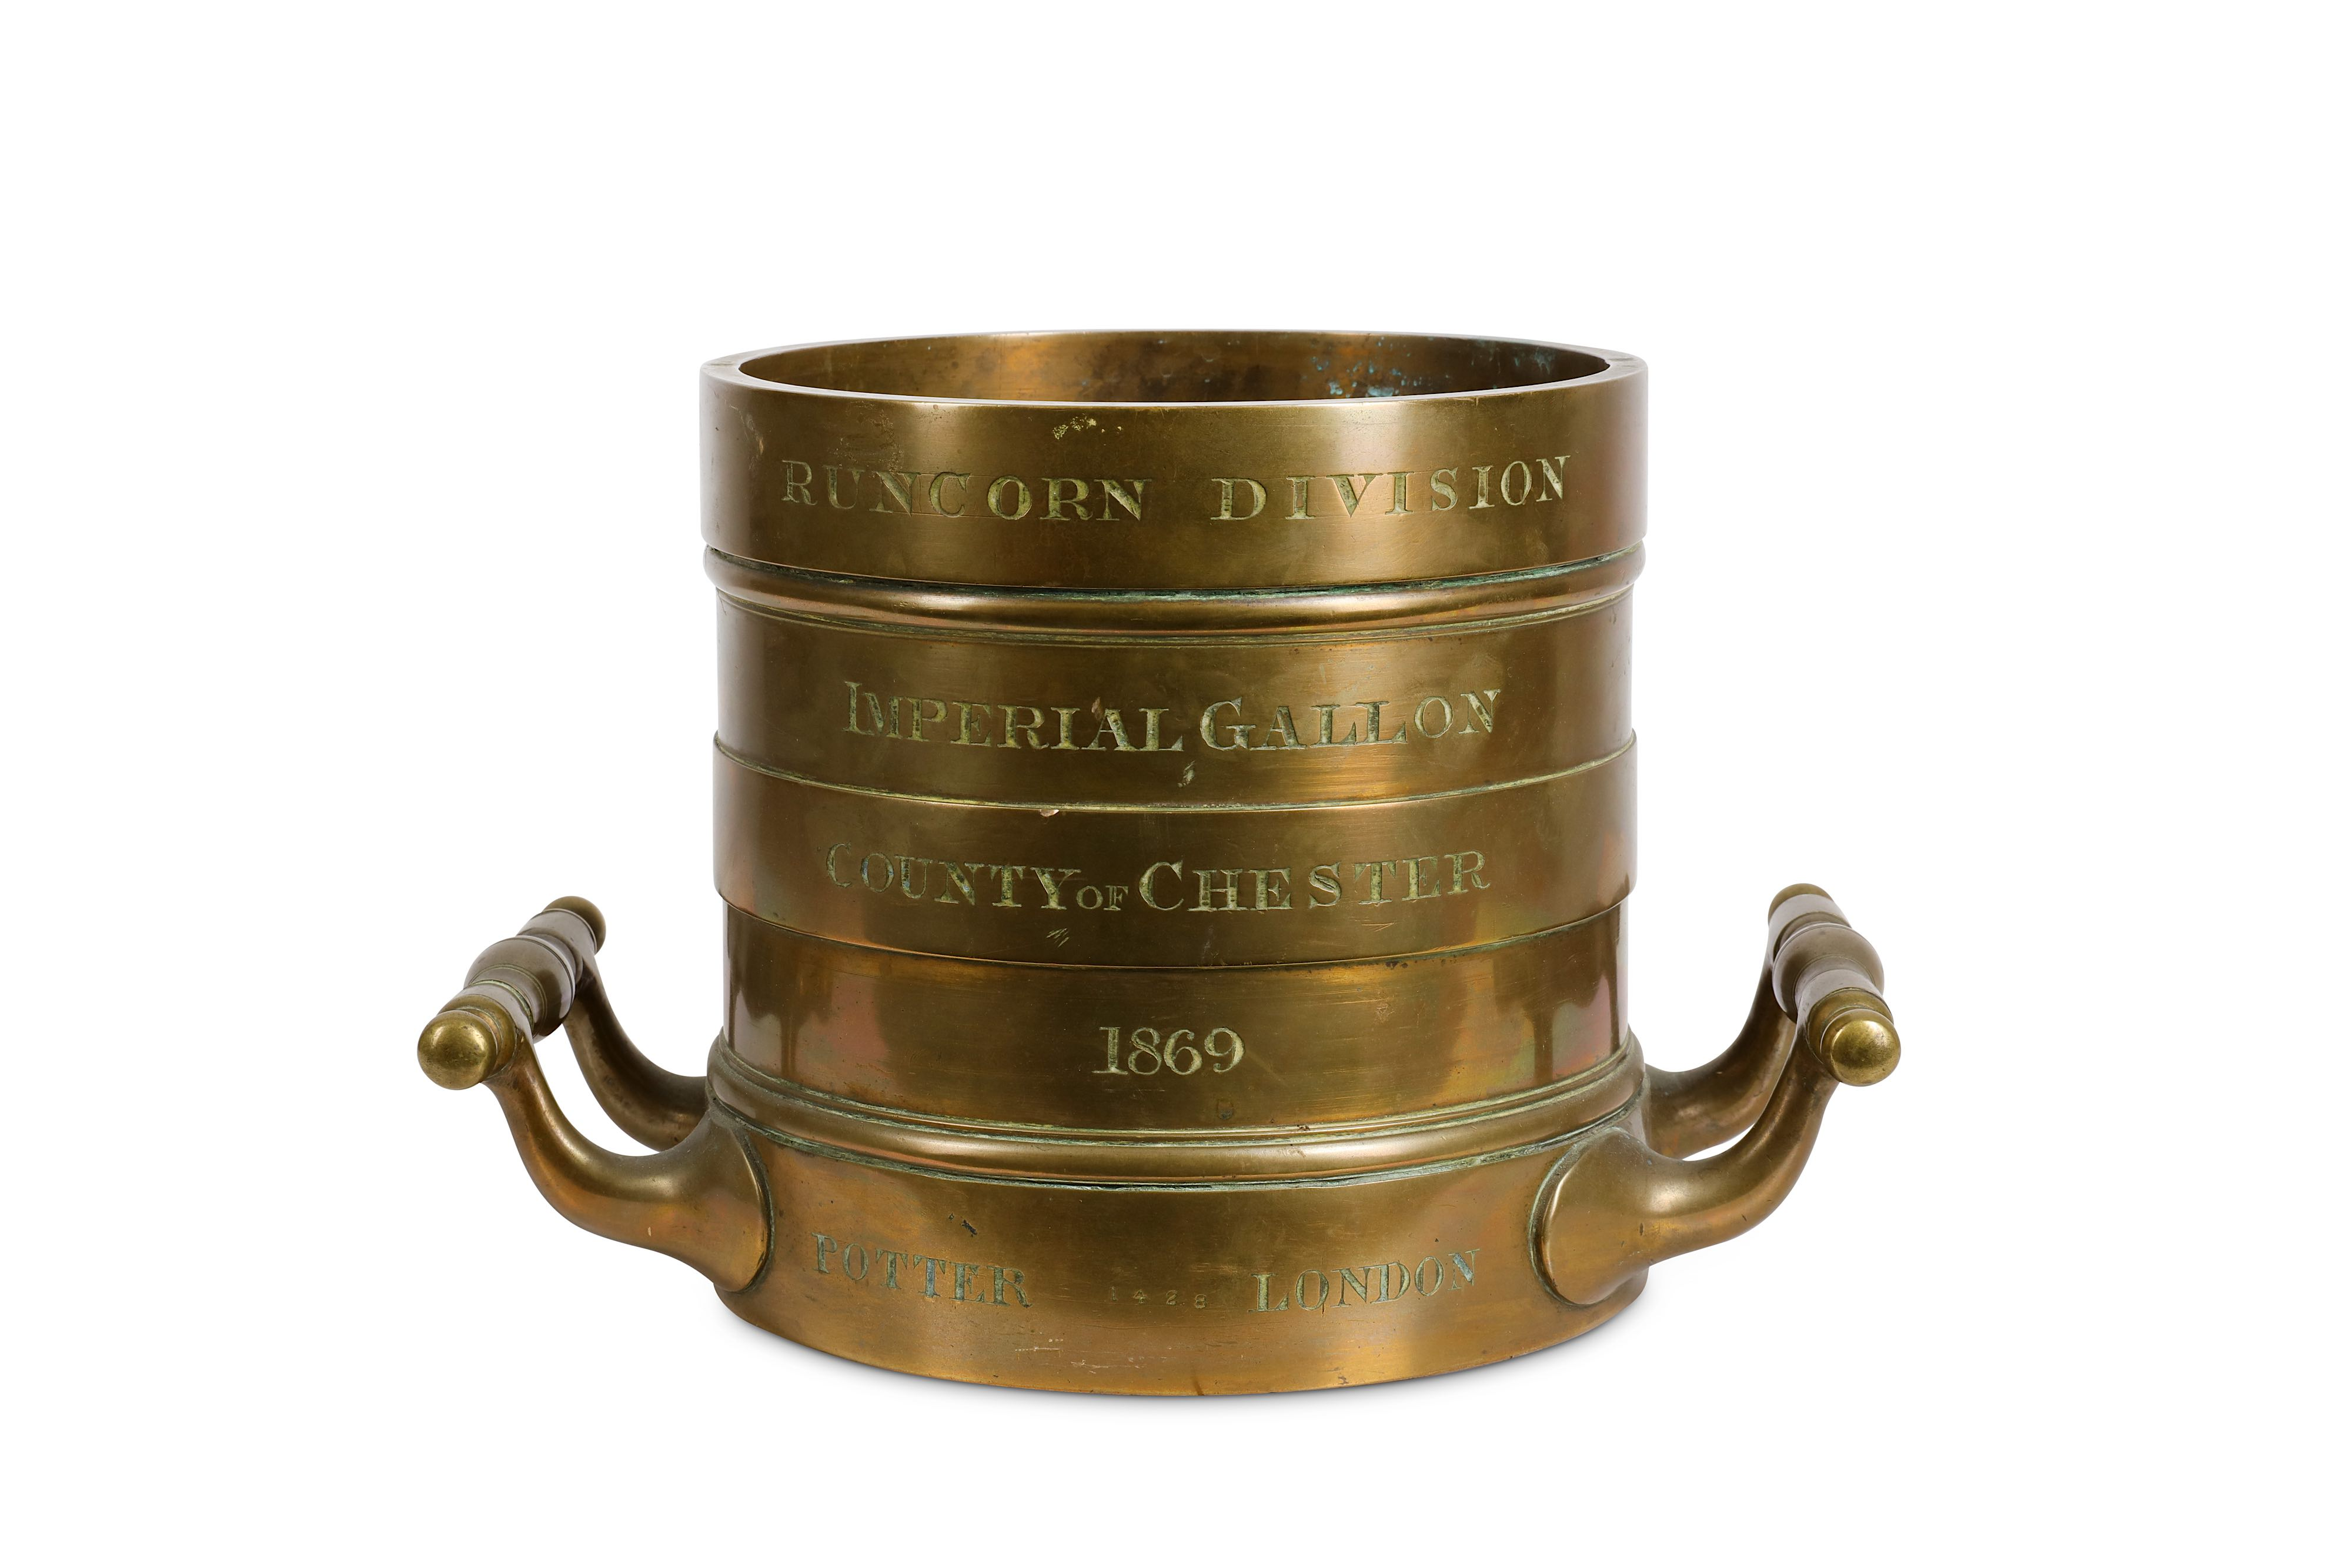 Lot 5 - A 19TH CENTURY BRONZE IMPERIAL GALLON MEASURE FOR THE COUNTY OF CHESTER